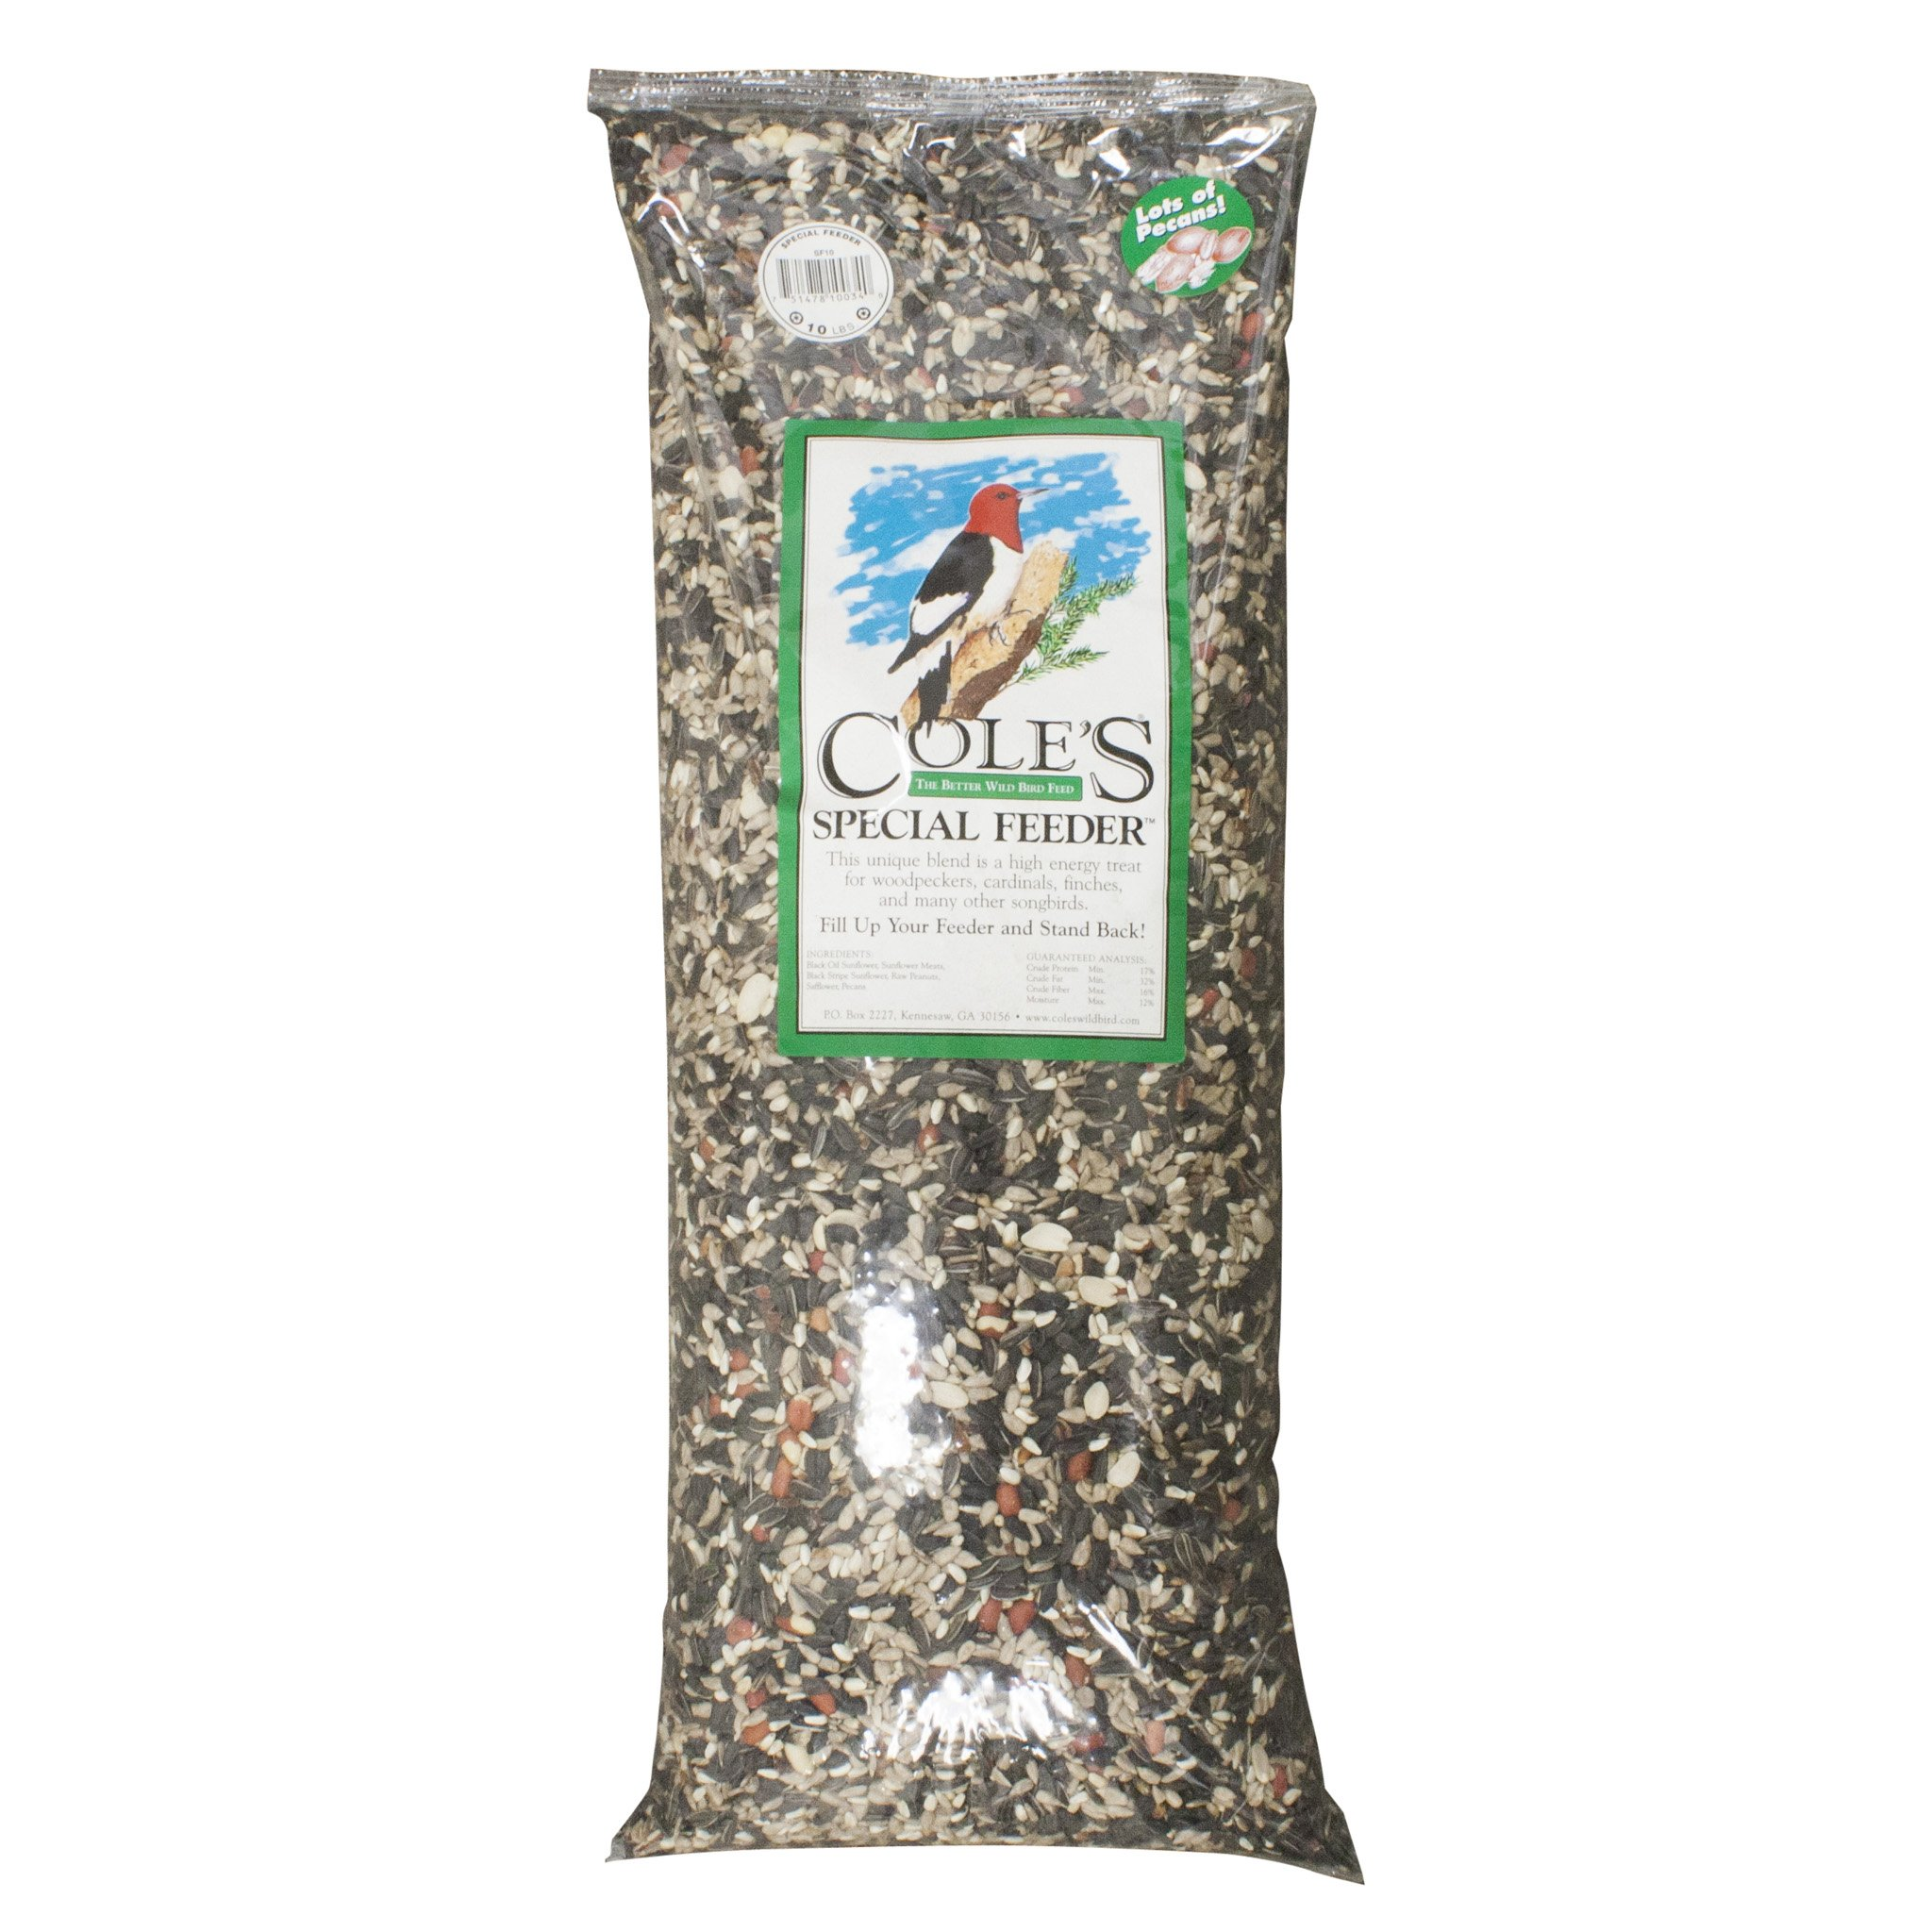 Cole'S Special Feeder Bird Seed Black Oil Sunflower,Pecans,Safflower,Stripe Sunflower,Sunflower Meat (4 bags) by COLES WILD BIRD PRODUCTS INC